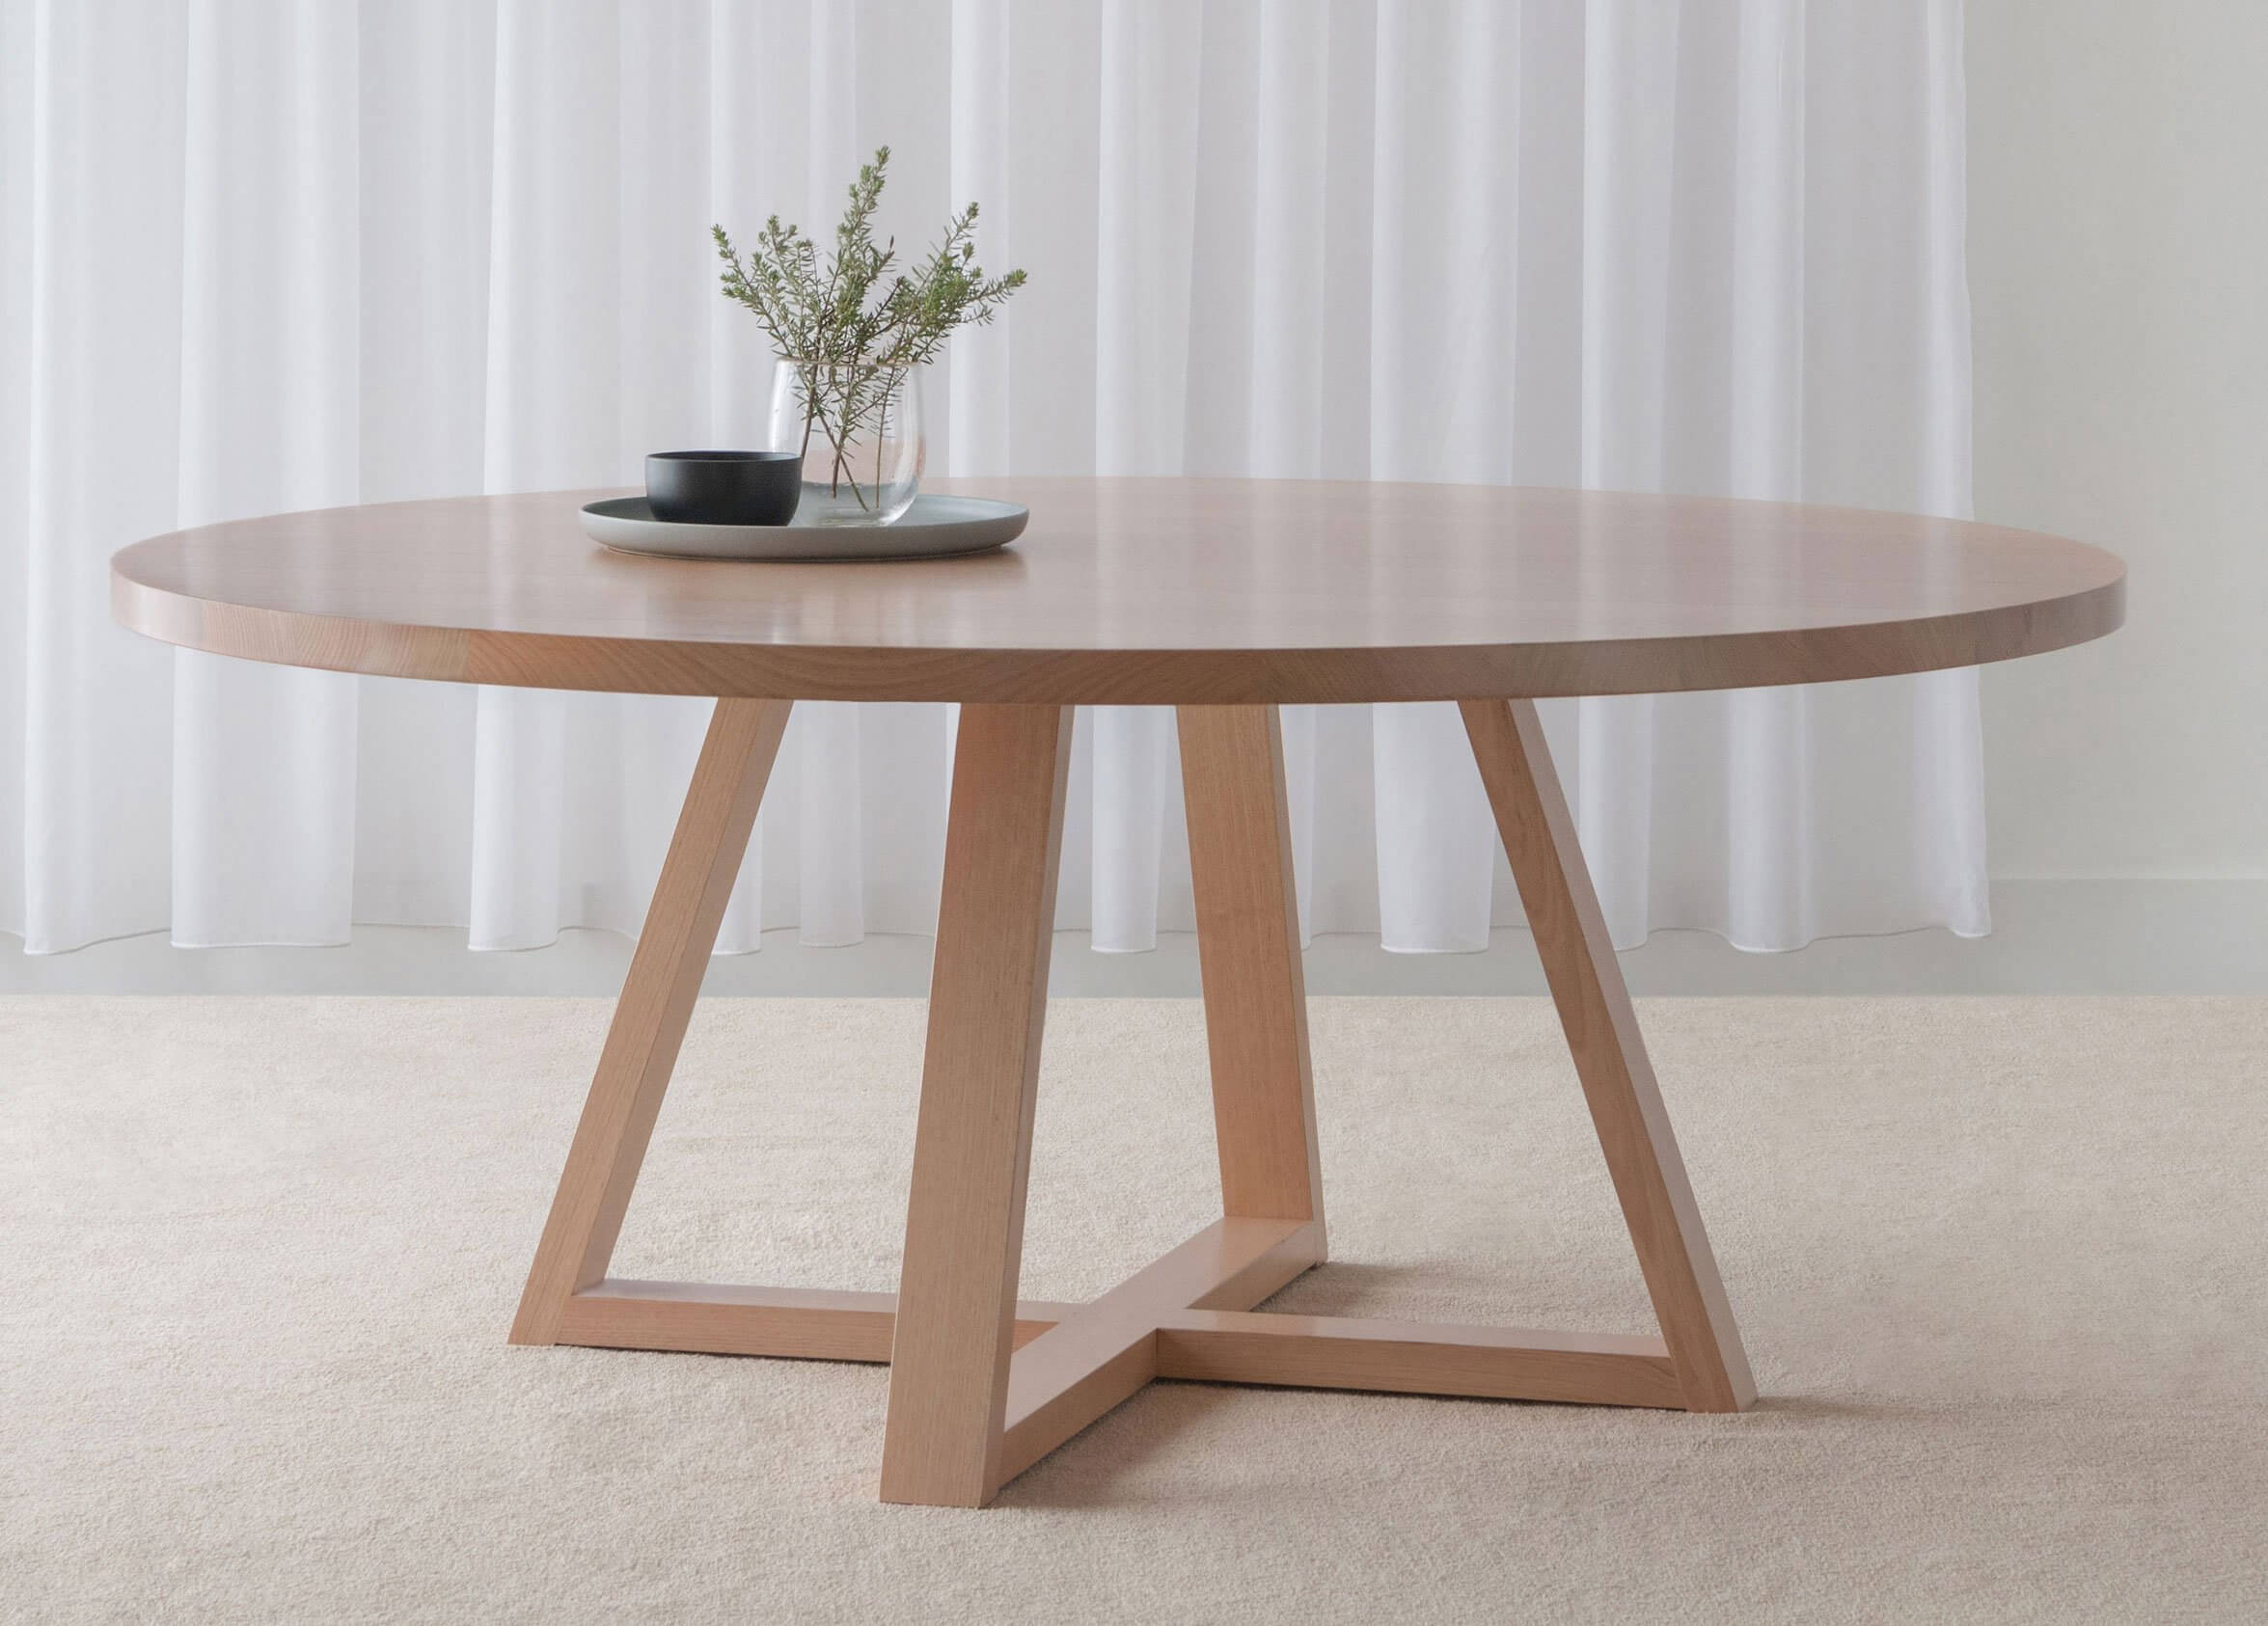 round timber dining table made in mountain ash timber